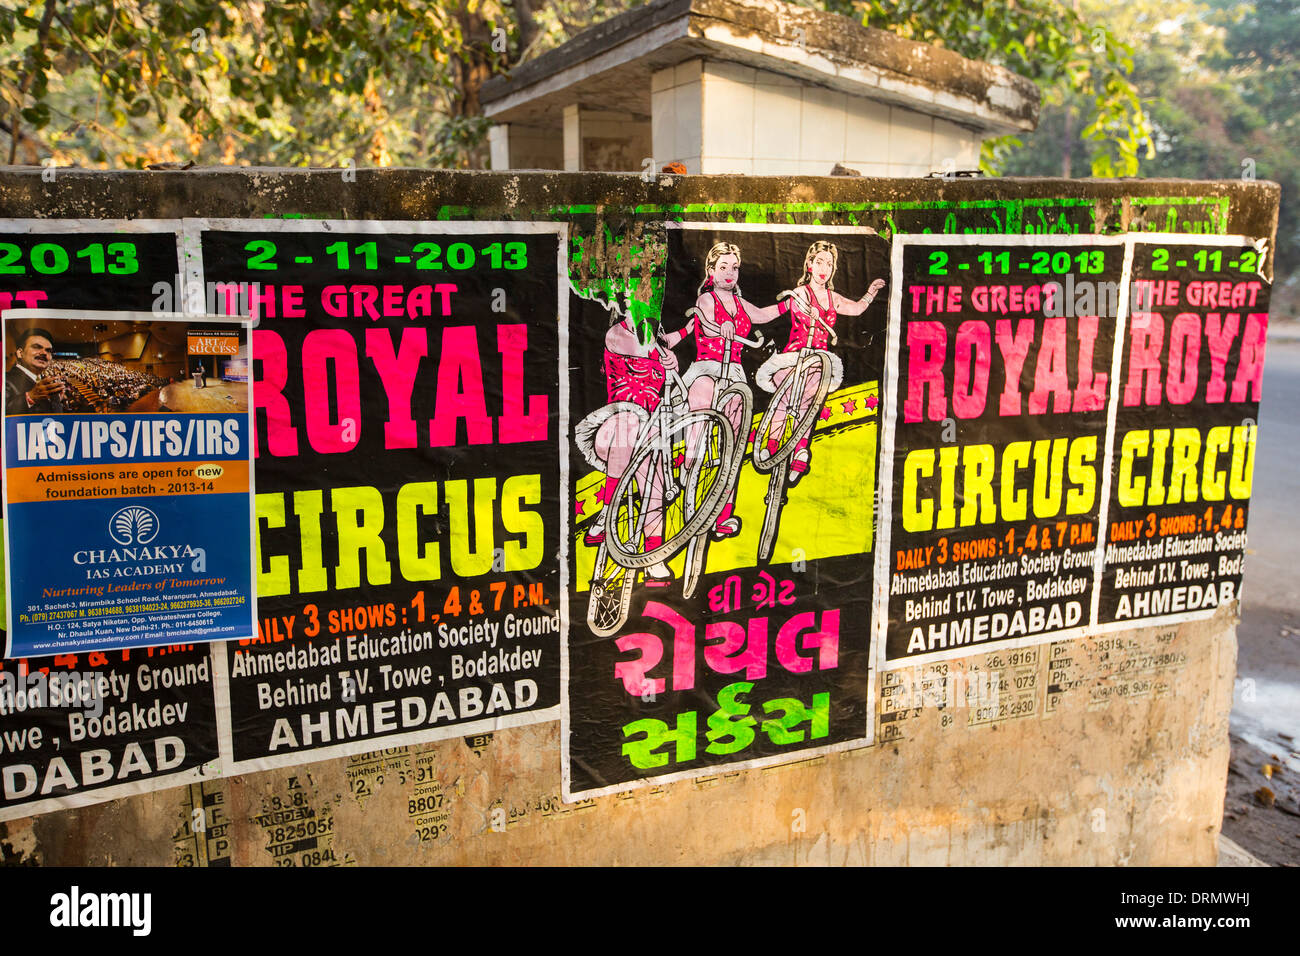 Posters for the Royal circus in Ahmedabad; India. - Stock Image